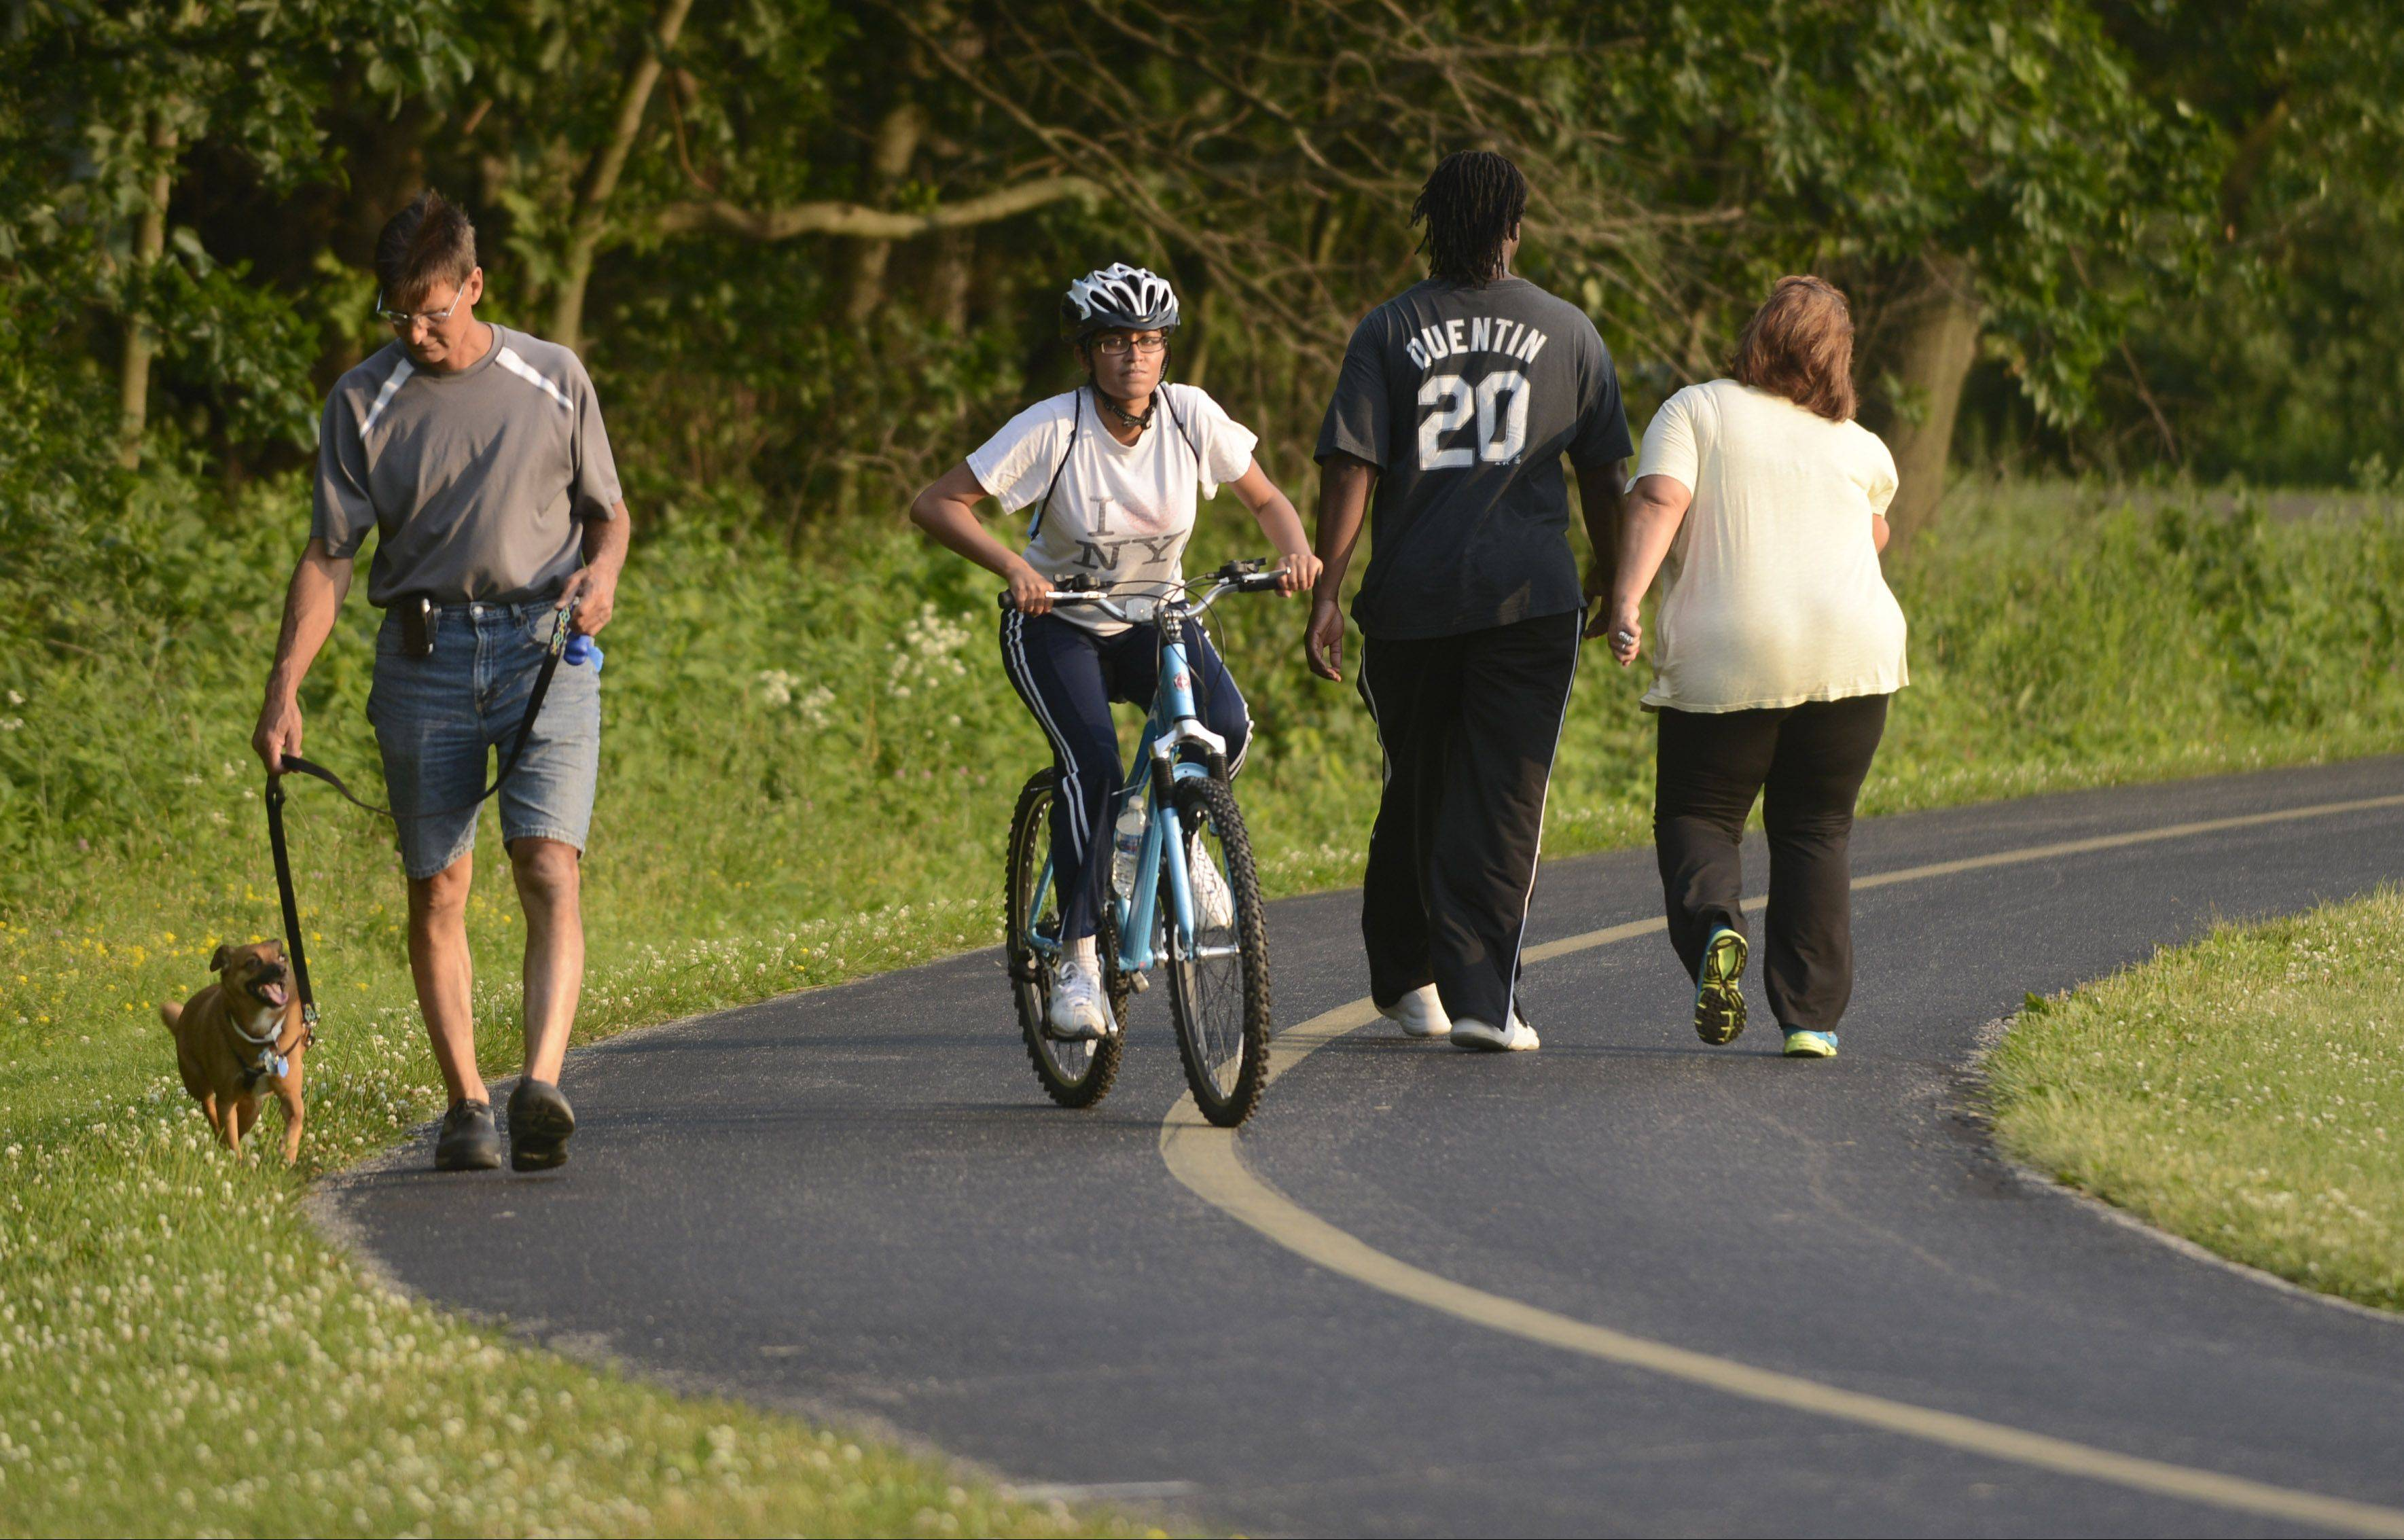 A cyclist slows to ride past pedestrians on the Busse Woods bike path. Trail advocates list simple courtesy as a top way to peacefully coexist and stay safe on the trails.